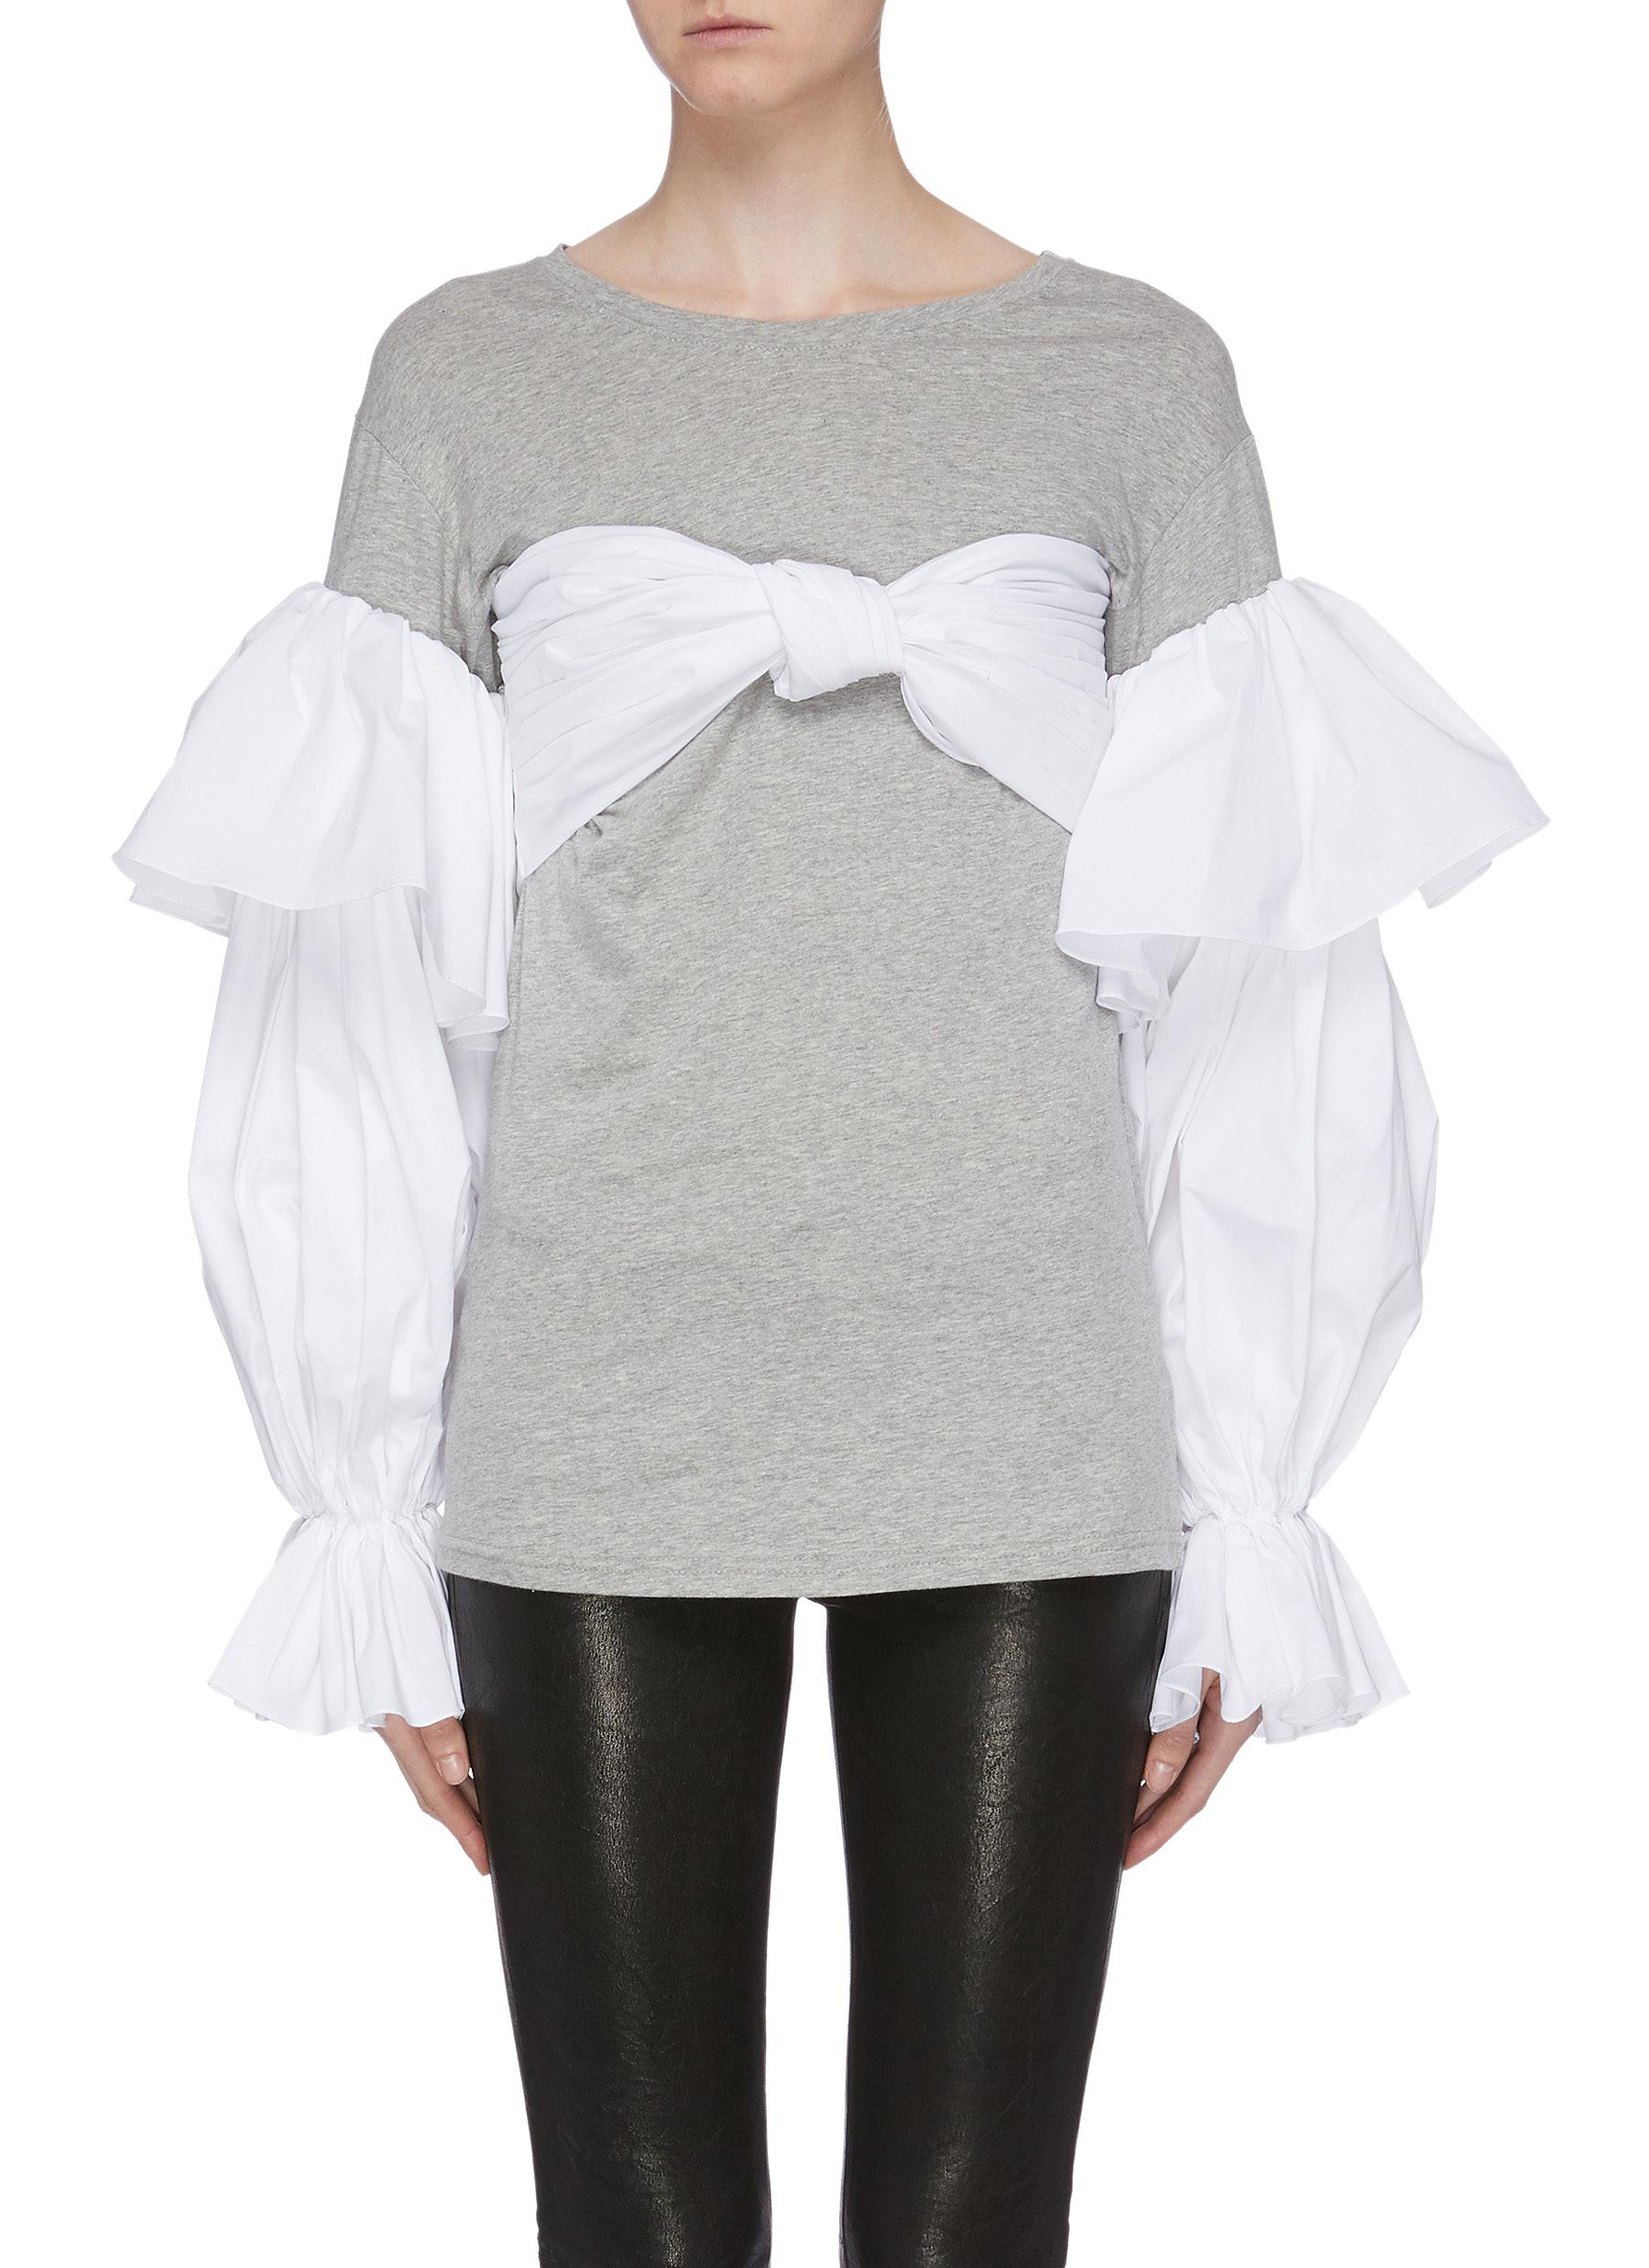 Lampedusa contrast panelled long balloon sleeve T-shirt by Leal Daccarett